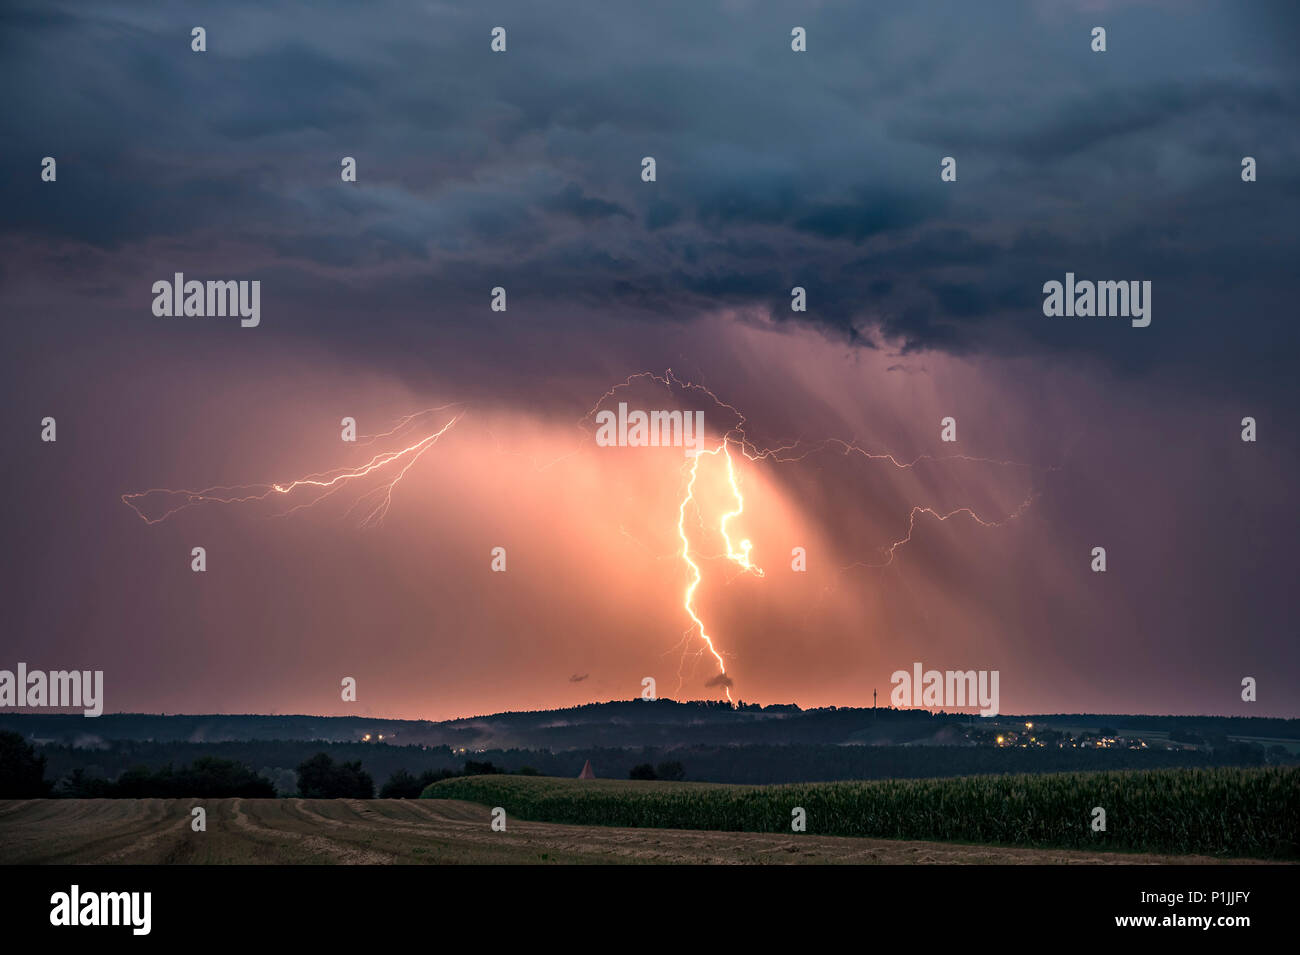 Cloud-to-ground lightning illuminated precipitation on the backside of a leaving supercell near Feuchtwangen, Baden-Wuerttemberg, Germany - Stock Image